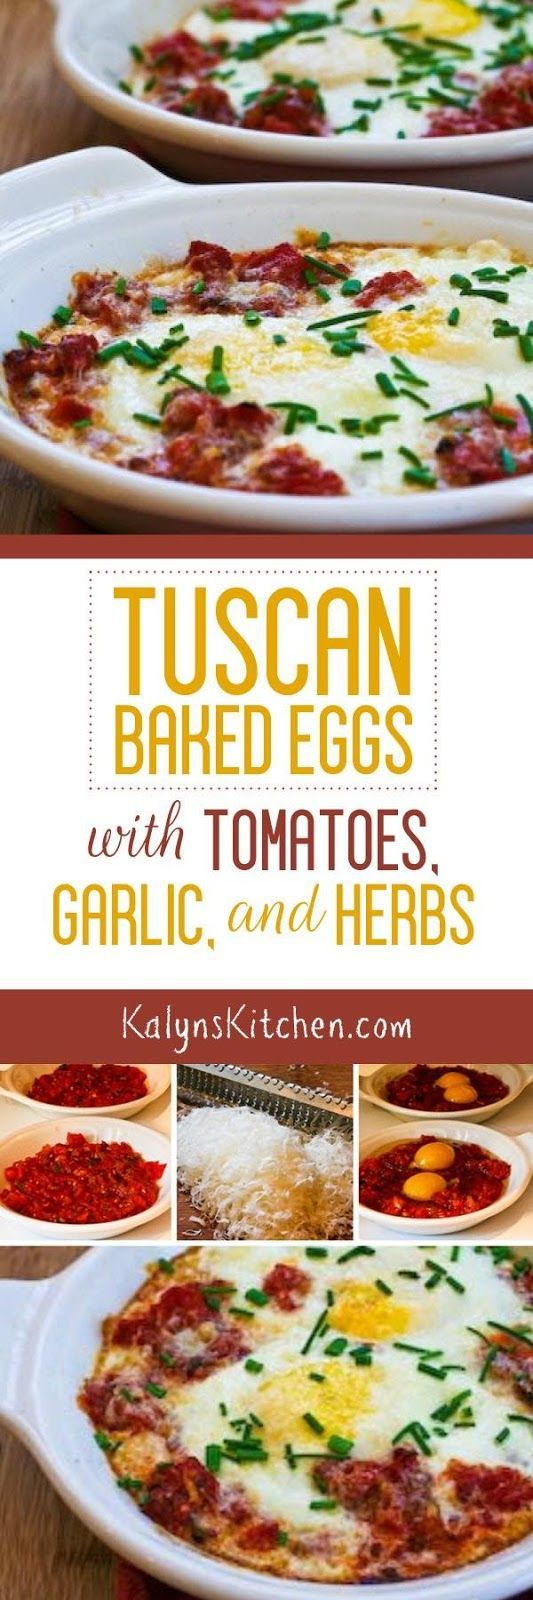 Tuscan Baked Eggs with Tomatoes, Red Onion, Garlic, Parmesan, and Herbs are an easy and delicious breakfast that's low-carb, gluten-free, and South Beach Diet friendly. [found on KalynsKitchen.com]